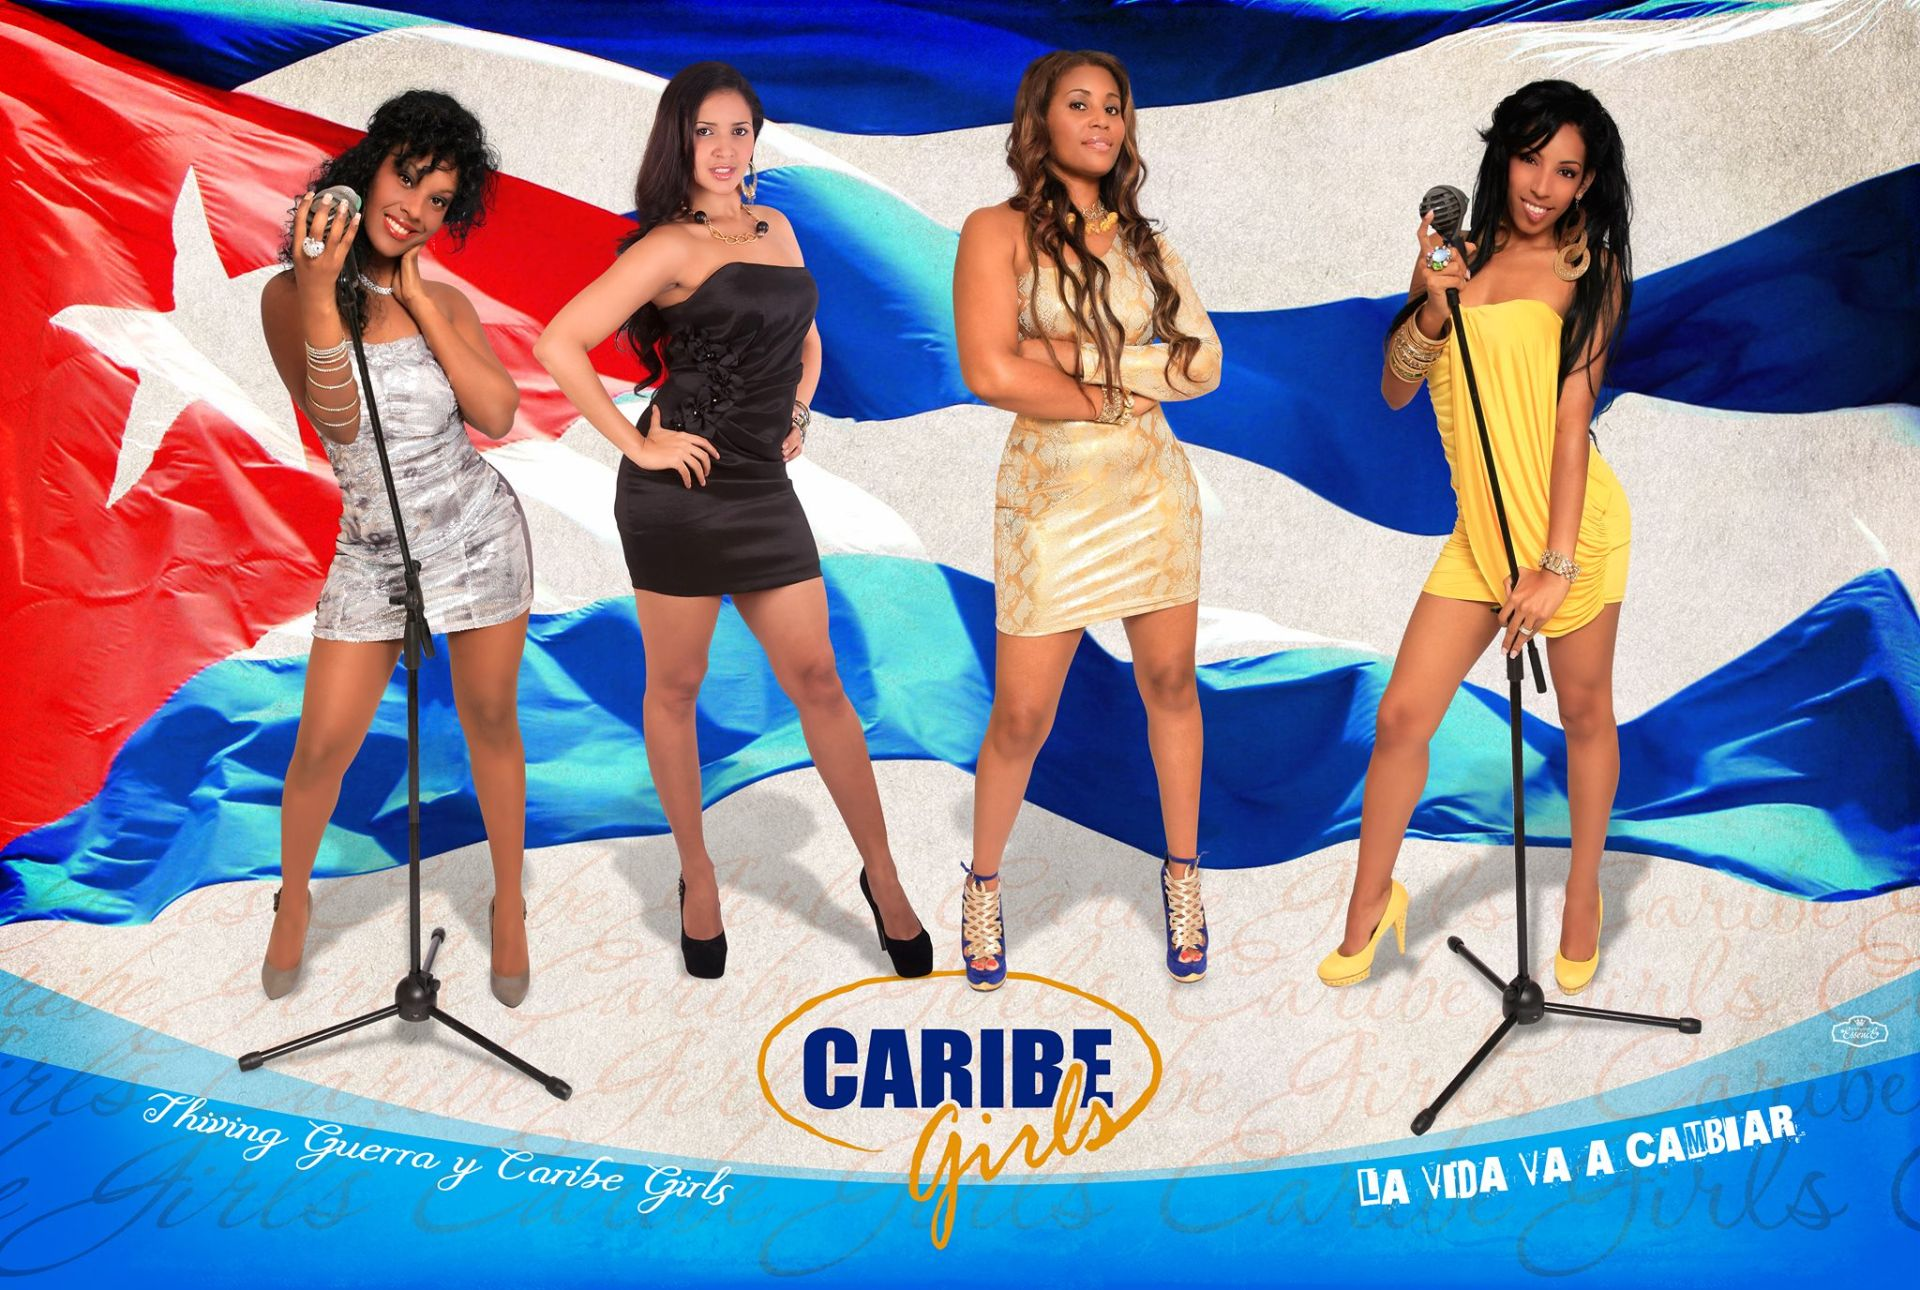 Caribe Girls Thiving Guerra_3457864.jpg